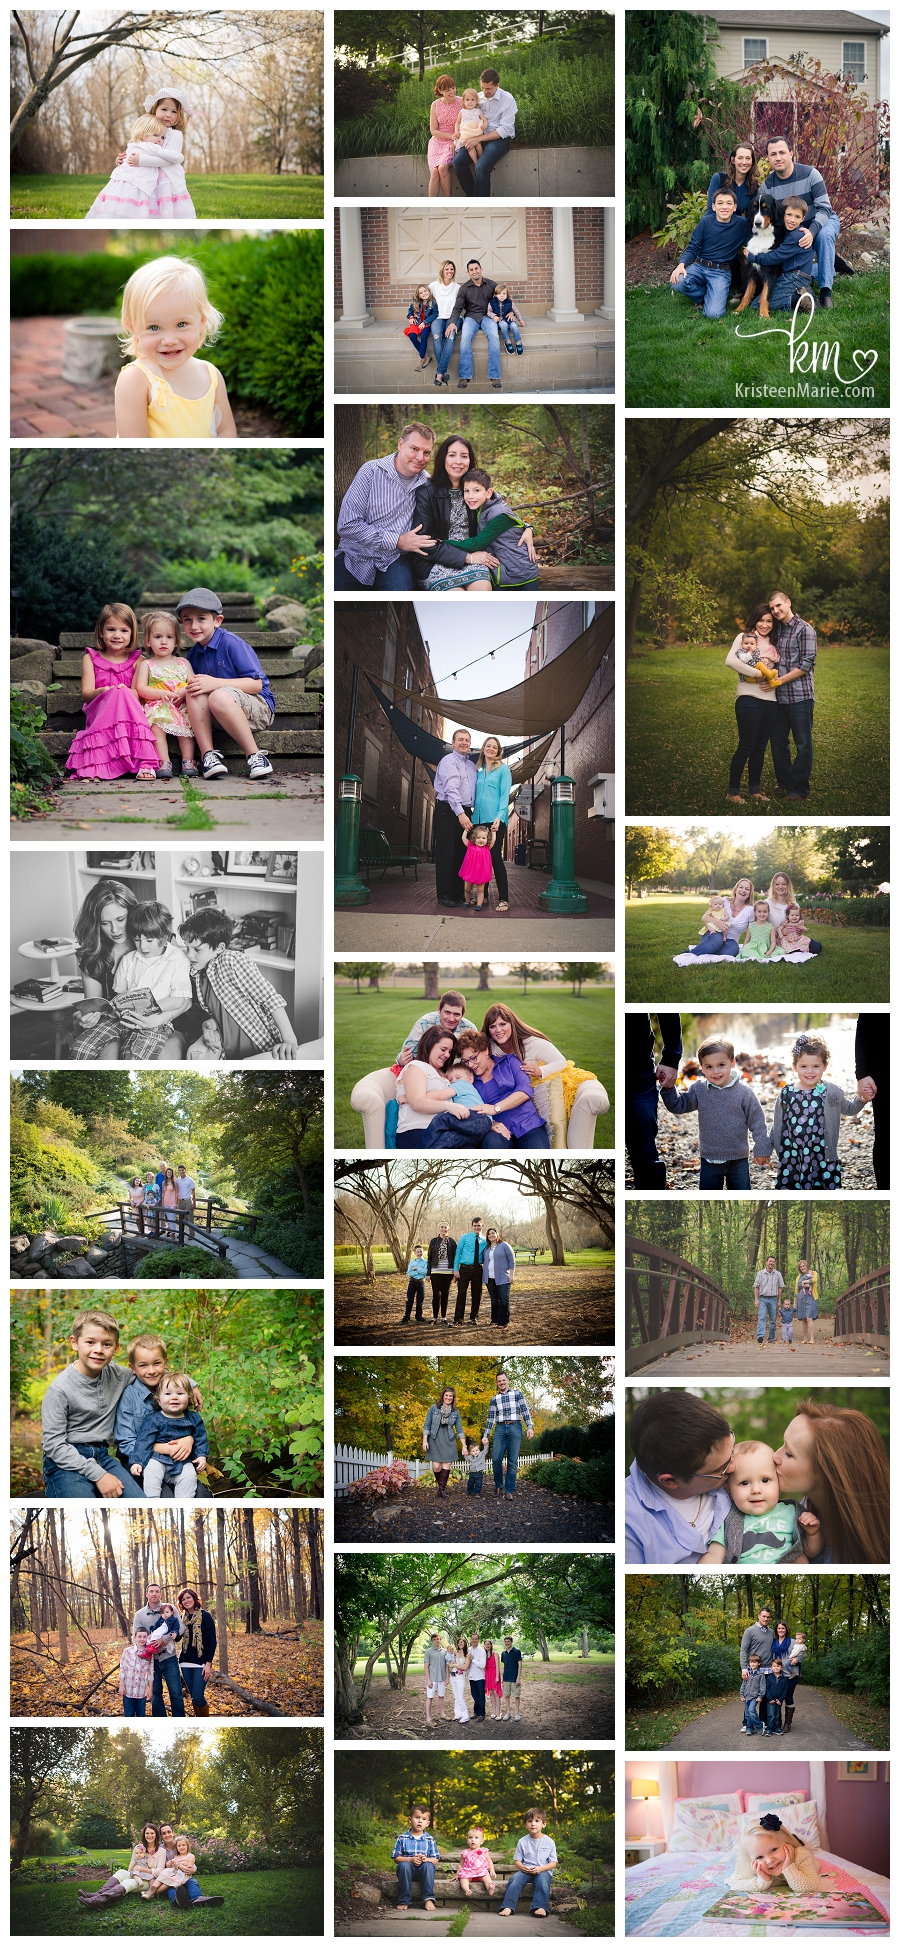 Family Photography in Indianapolis, IN